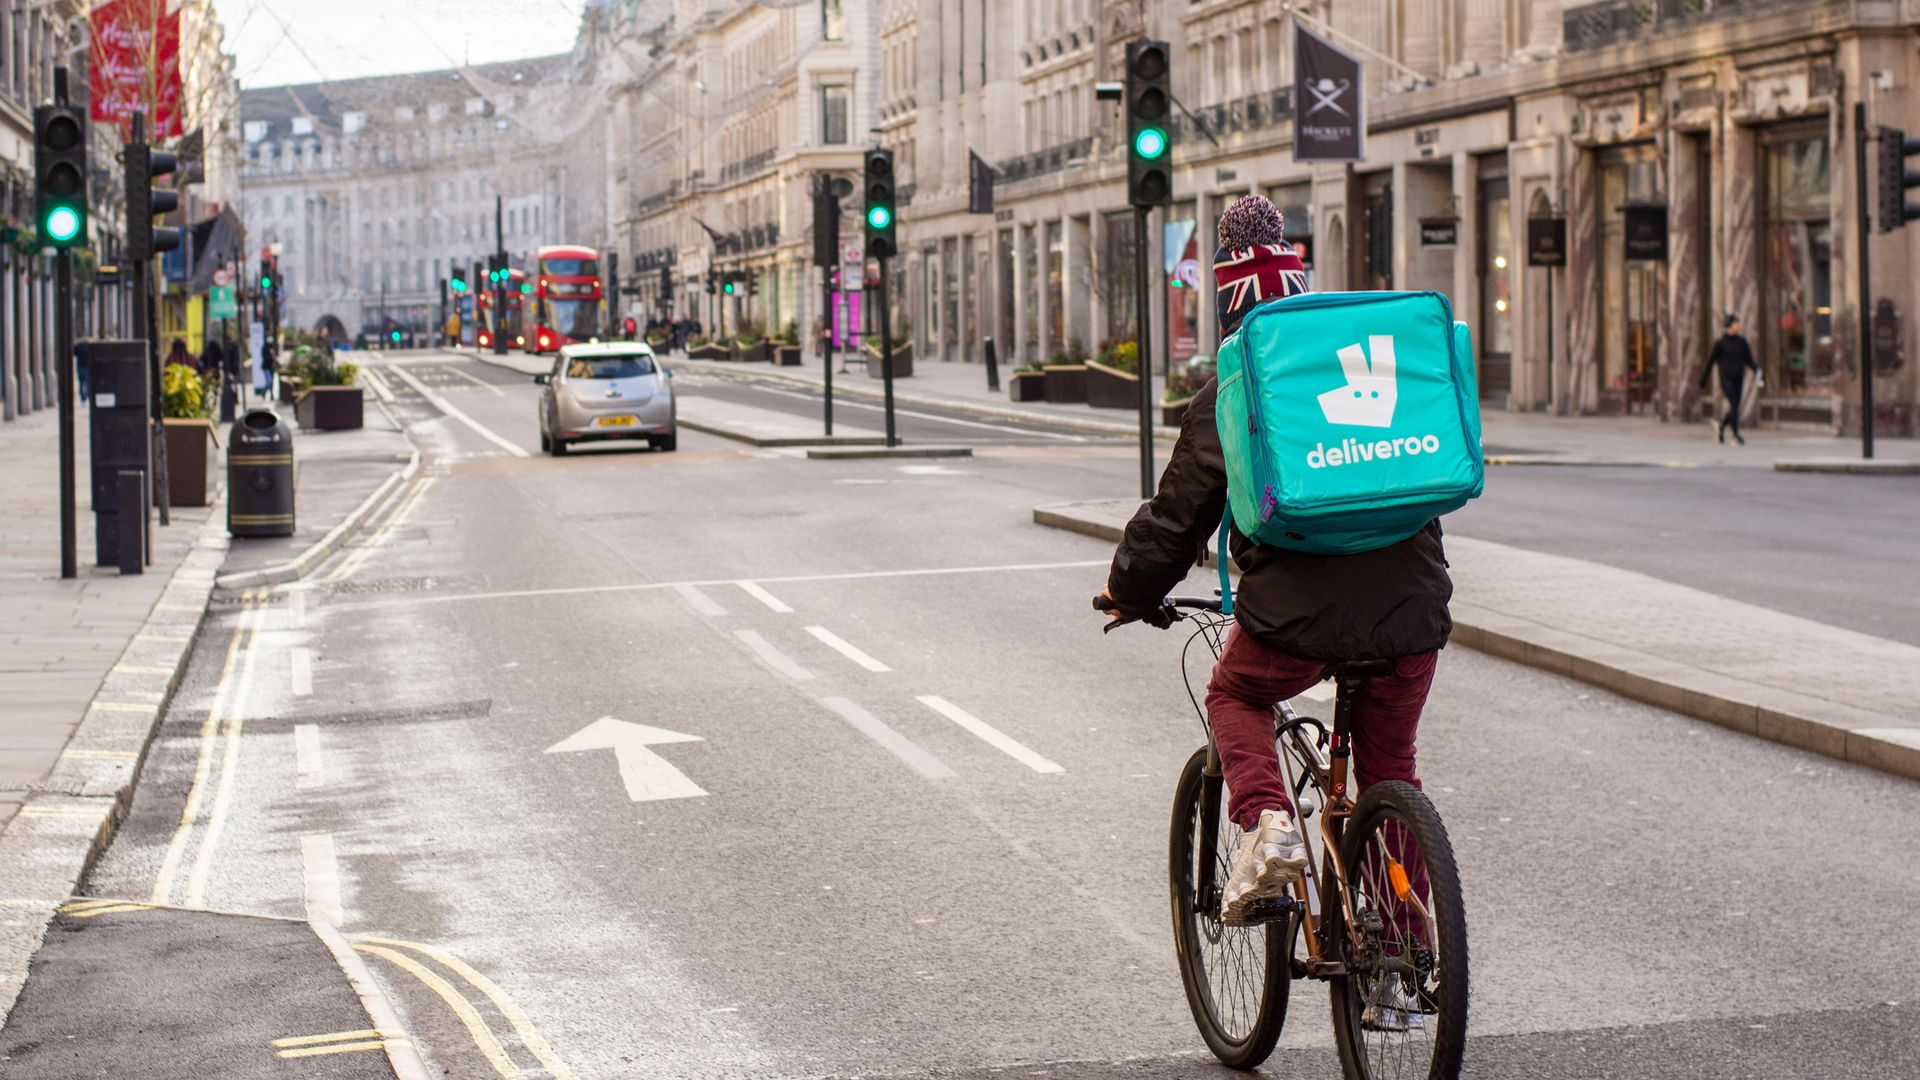 A Deliveroo courier rides along London's empty Regent Street during the Covid-19 lockdown - Credit: Photo by Pietro Recchia/SOPA Images/LightRocket via Getty Images